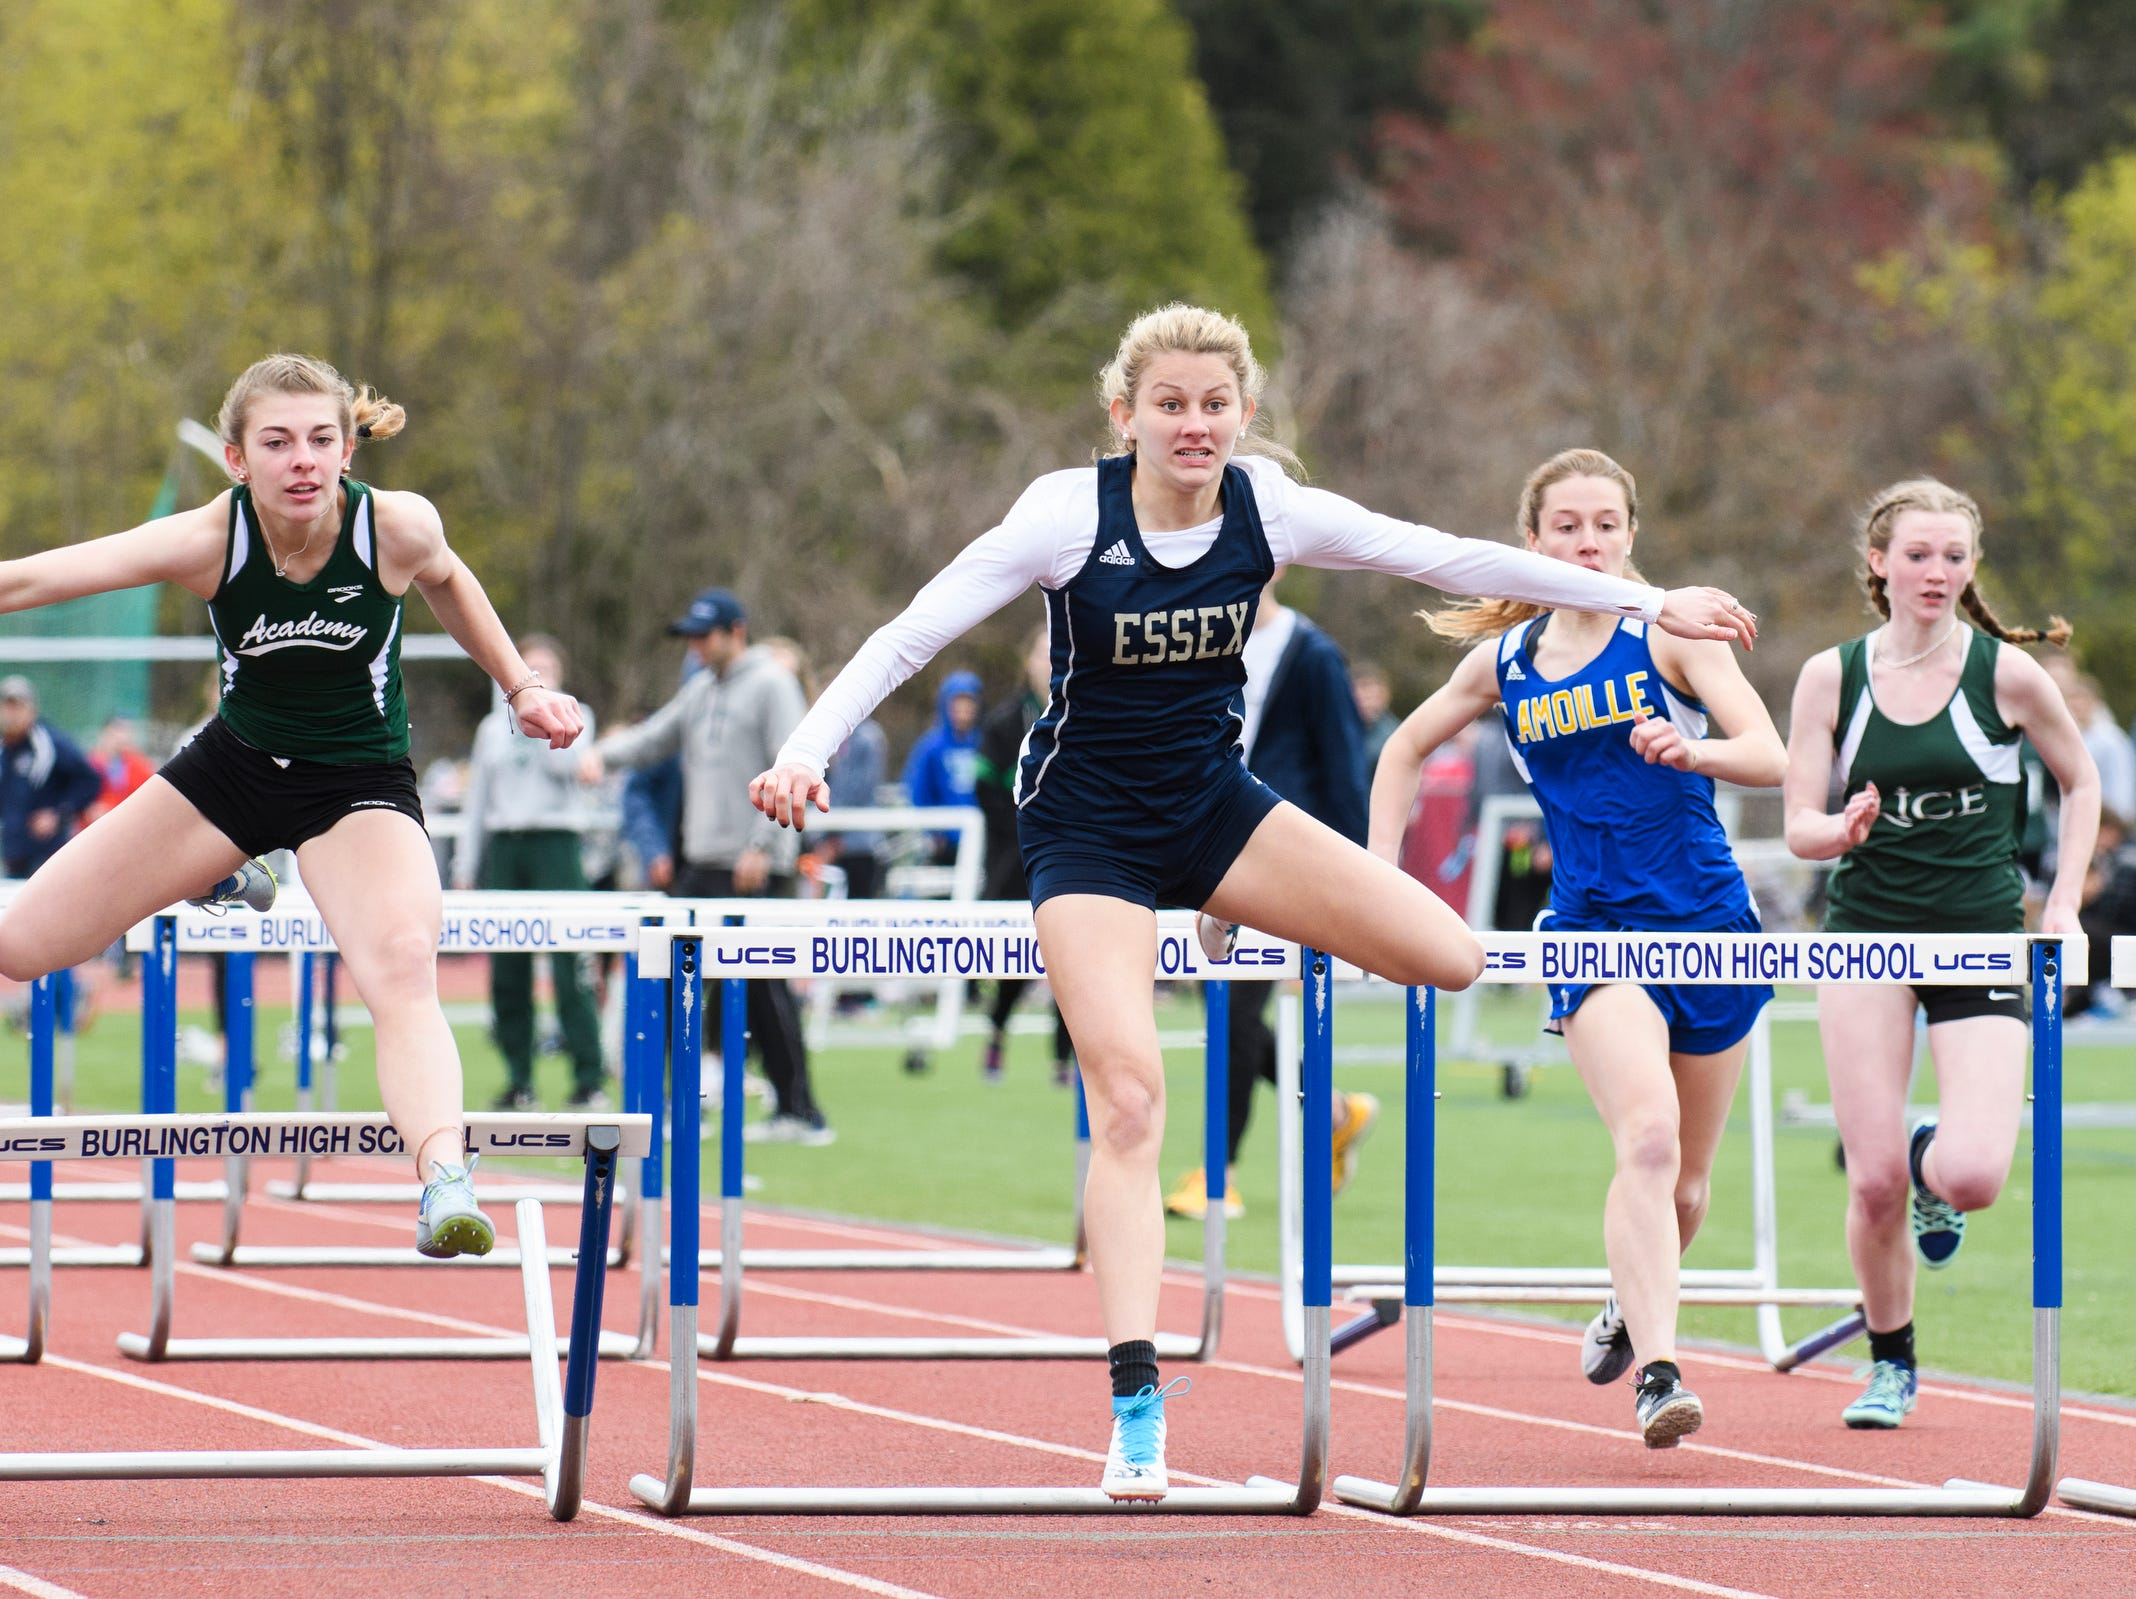 Essex's Nejla Hadzic leads the pack of runners in the 100m hurdles during the Burlington Invitational high school track and field meet at Buck Hard Field on Saturday May 11, 2019 in Burlington, Vermont.